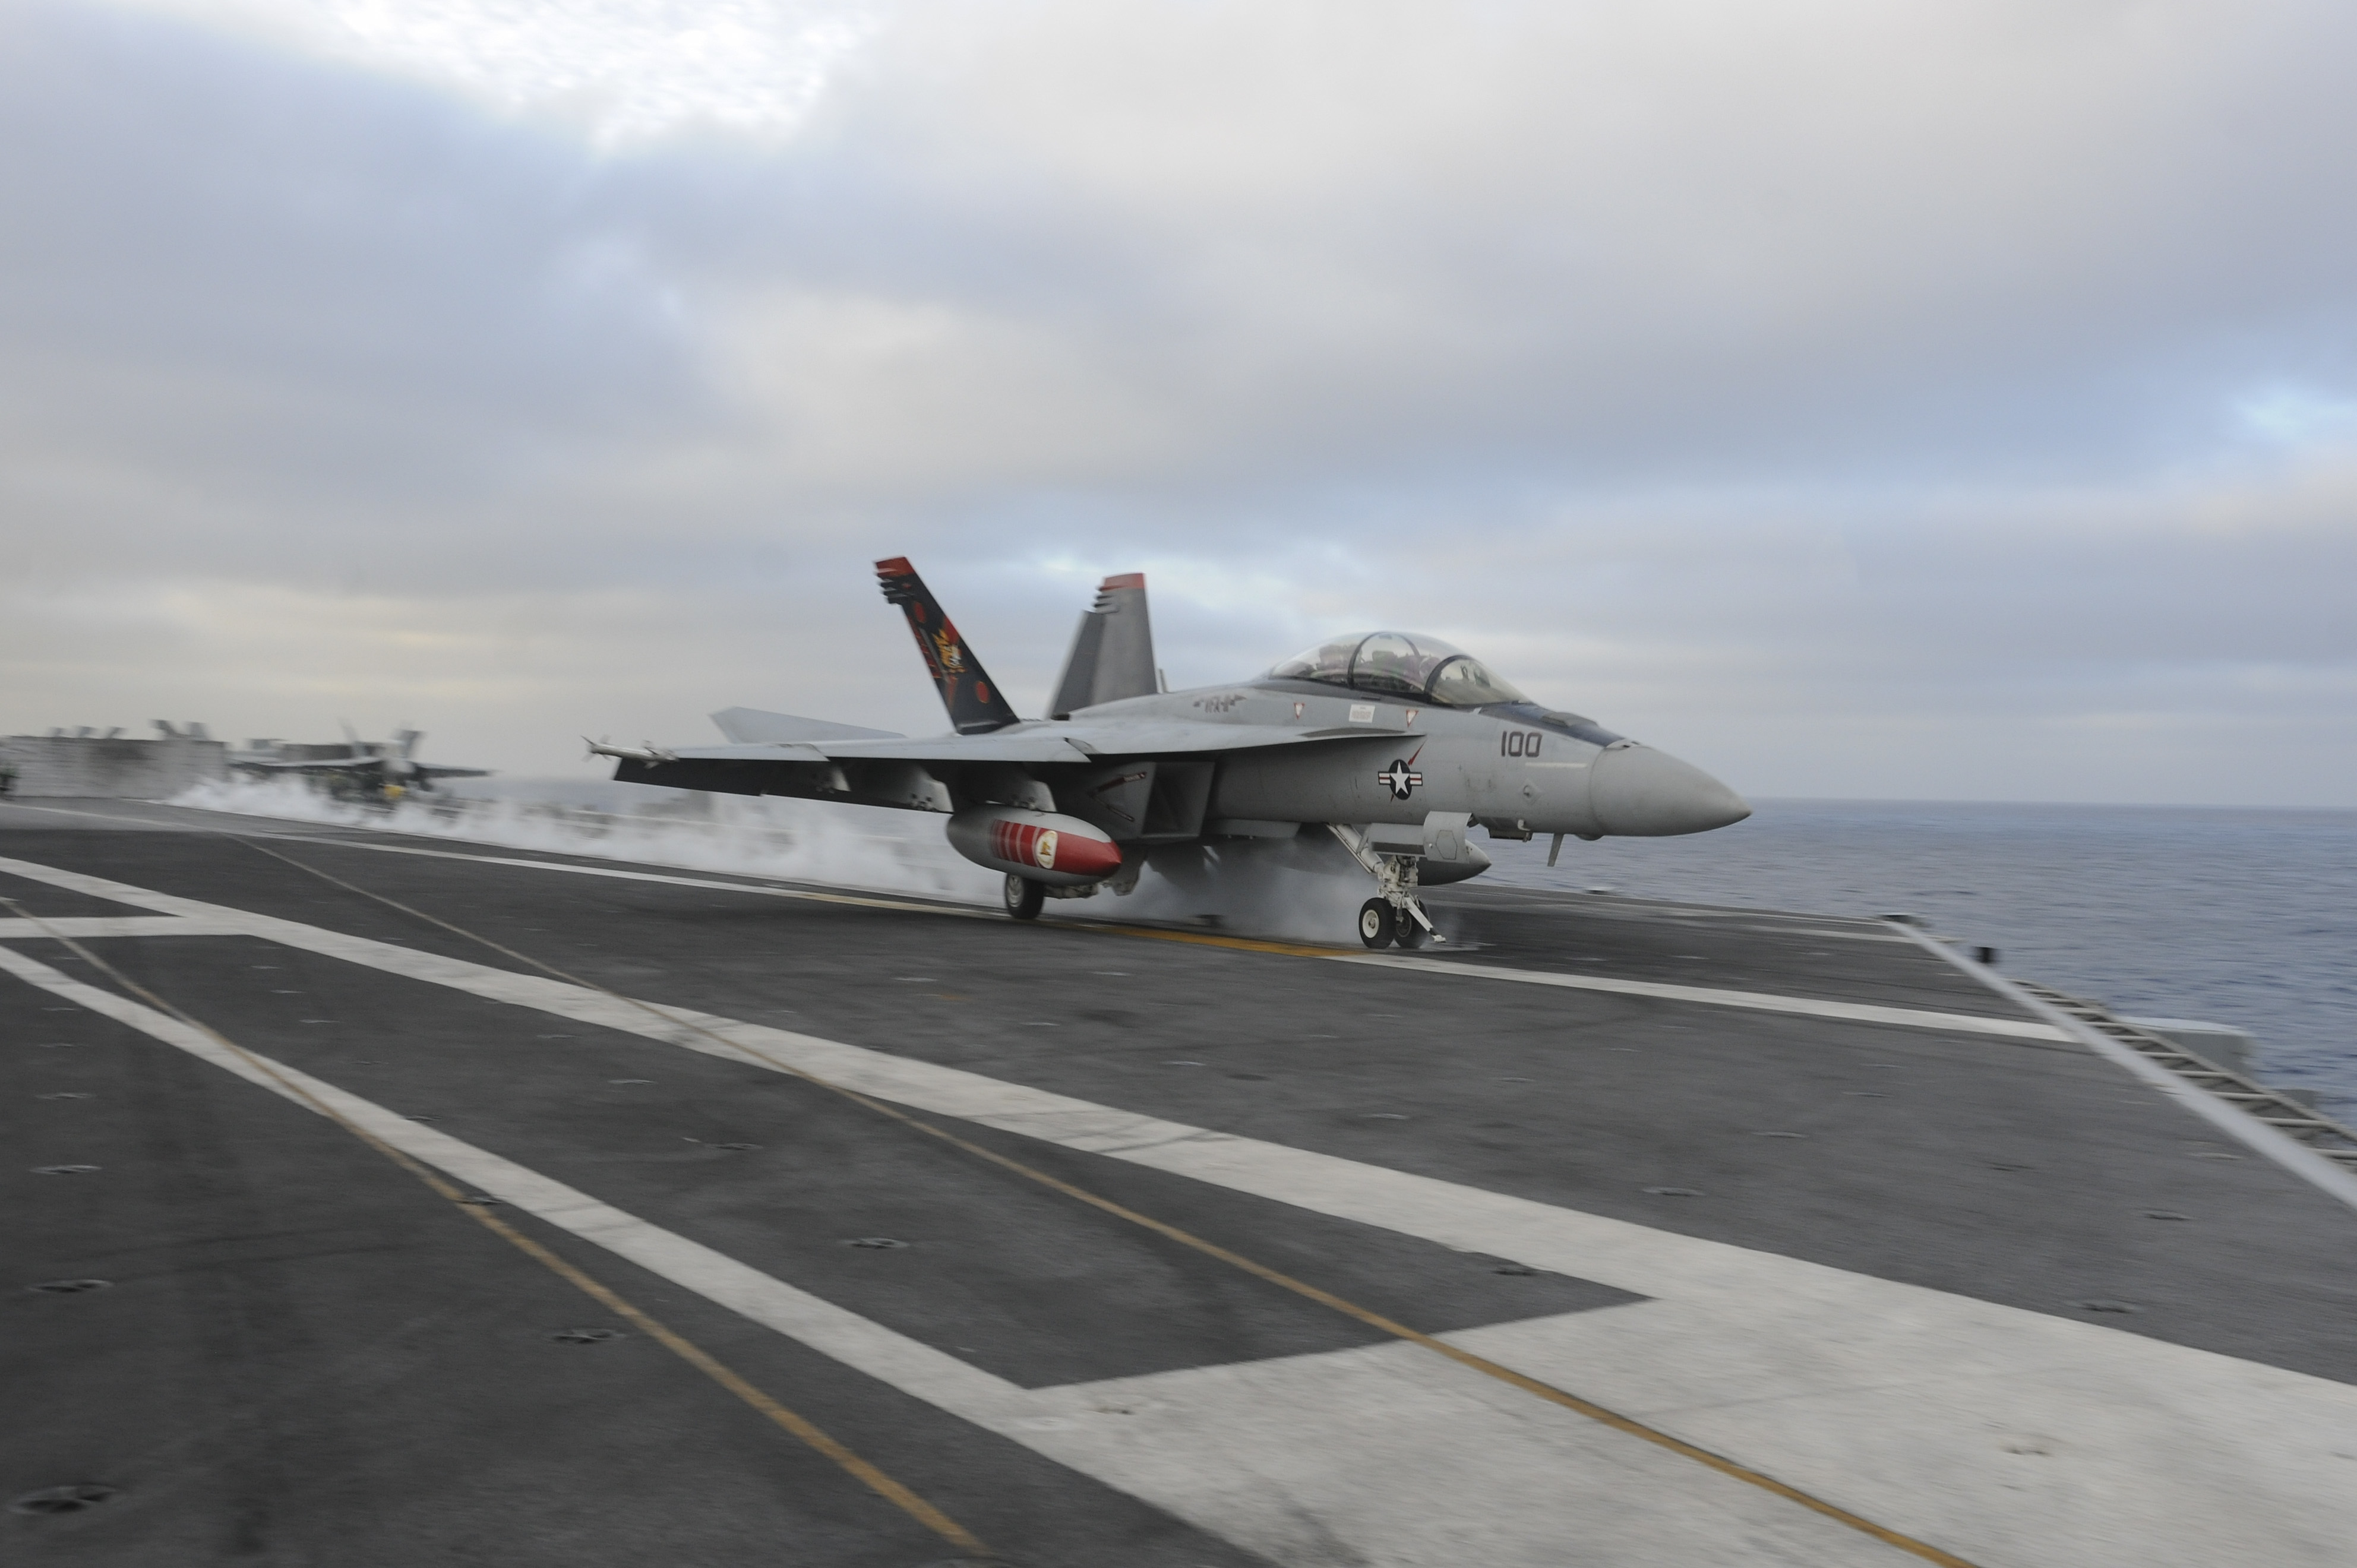 151121-N-NV908-299 PACIFIC OCEAN (Nov. 21, 2015) – An F/A-18F Super Hornet, assigned to the Red Rippers of Strike Fighter Squadron (VFA) 11, launches off the flight deck of the aircraft carrier USS Theodore Roosevelt (CVN 71). The Red Rippers,  along with all Carrier Air Wing One aircraft, are on their way home after completing an eight-month deployment as part of the Theodore Roosevelt Carrier Strike Group. Theodore Roosevelt is operating in the U.S. 3rd Fleet area of operations as part of a worldwide deployment en route to its new homeport in San Diego to complete a three-carrier homeport shift. (U.S. Navy Photo by Mass Communication Specialist Seaman Chad M. Trudeau/Released)